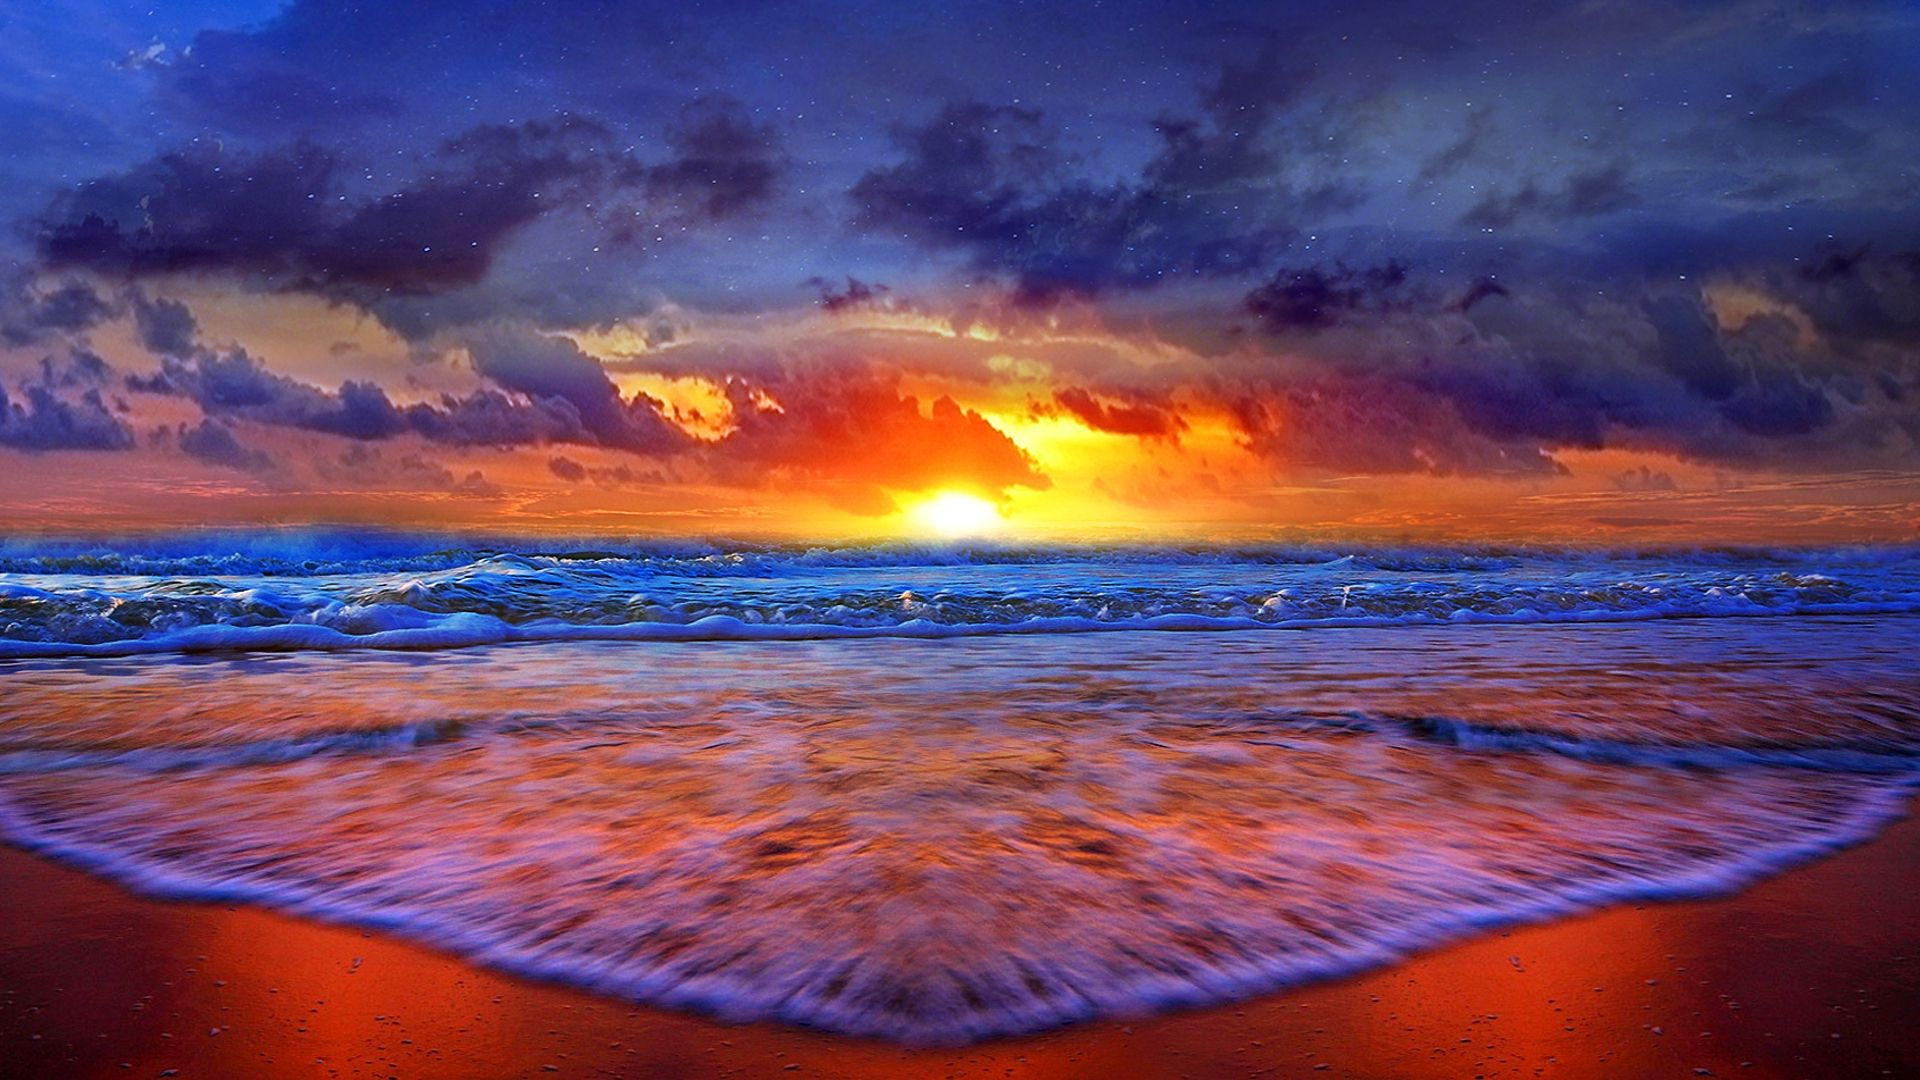 Get Beach Sunset Wallpaper Full Hd Tia At Movingwallpapers Net Dont Forget Drop Follow And Pin Iphone In 2020 Beach Sunset Wallpaper Sunset Wallpaper Sunset Images